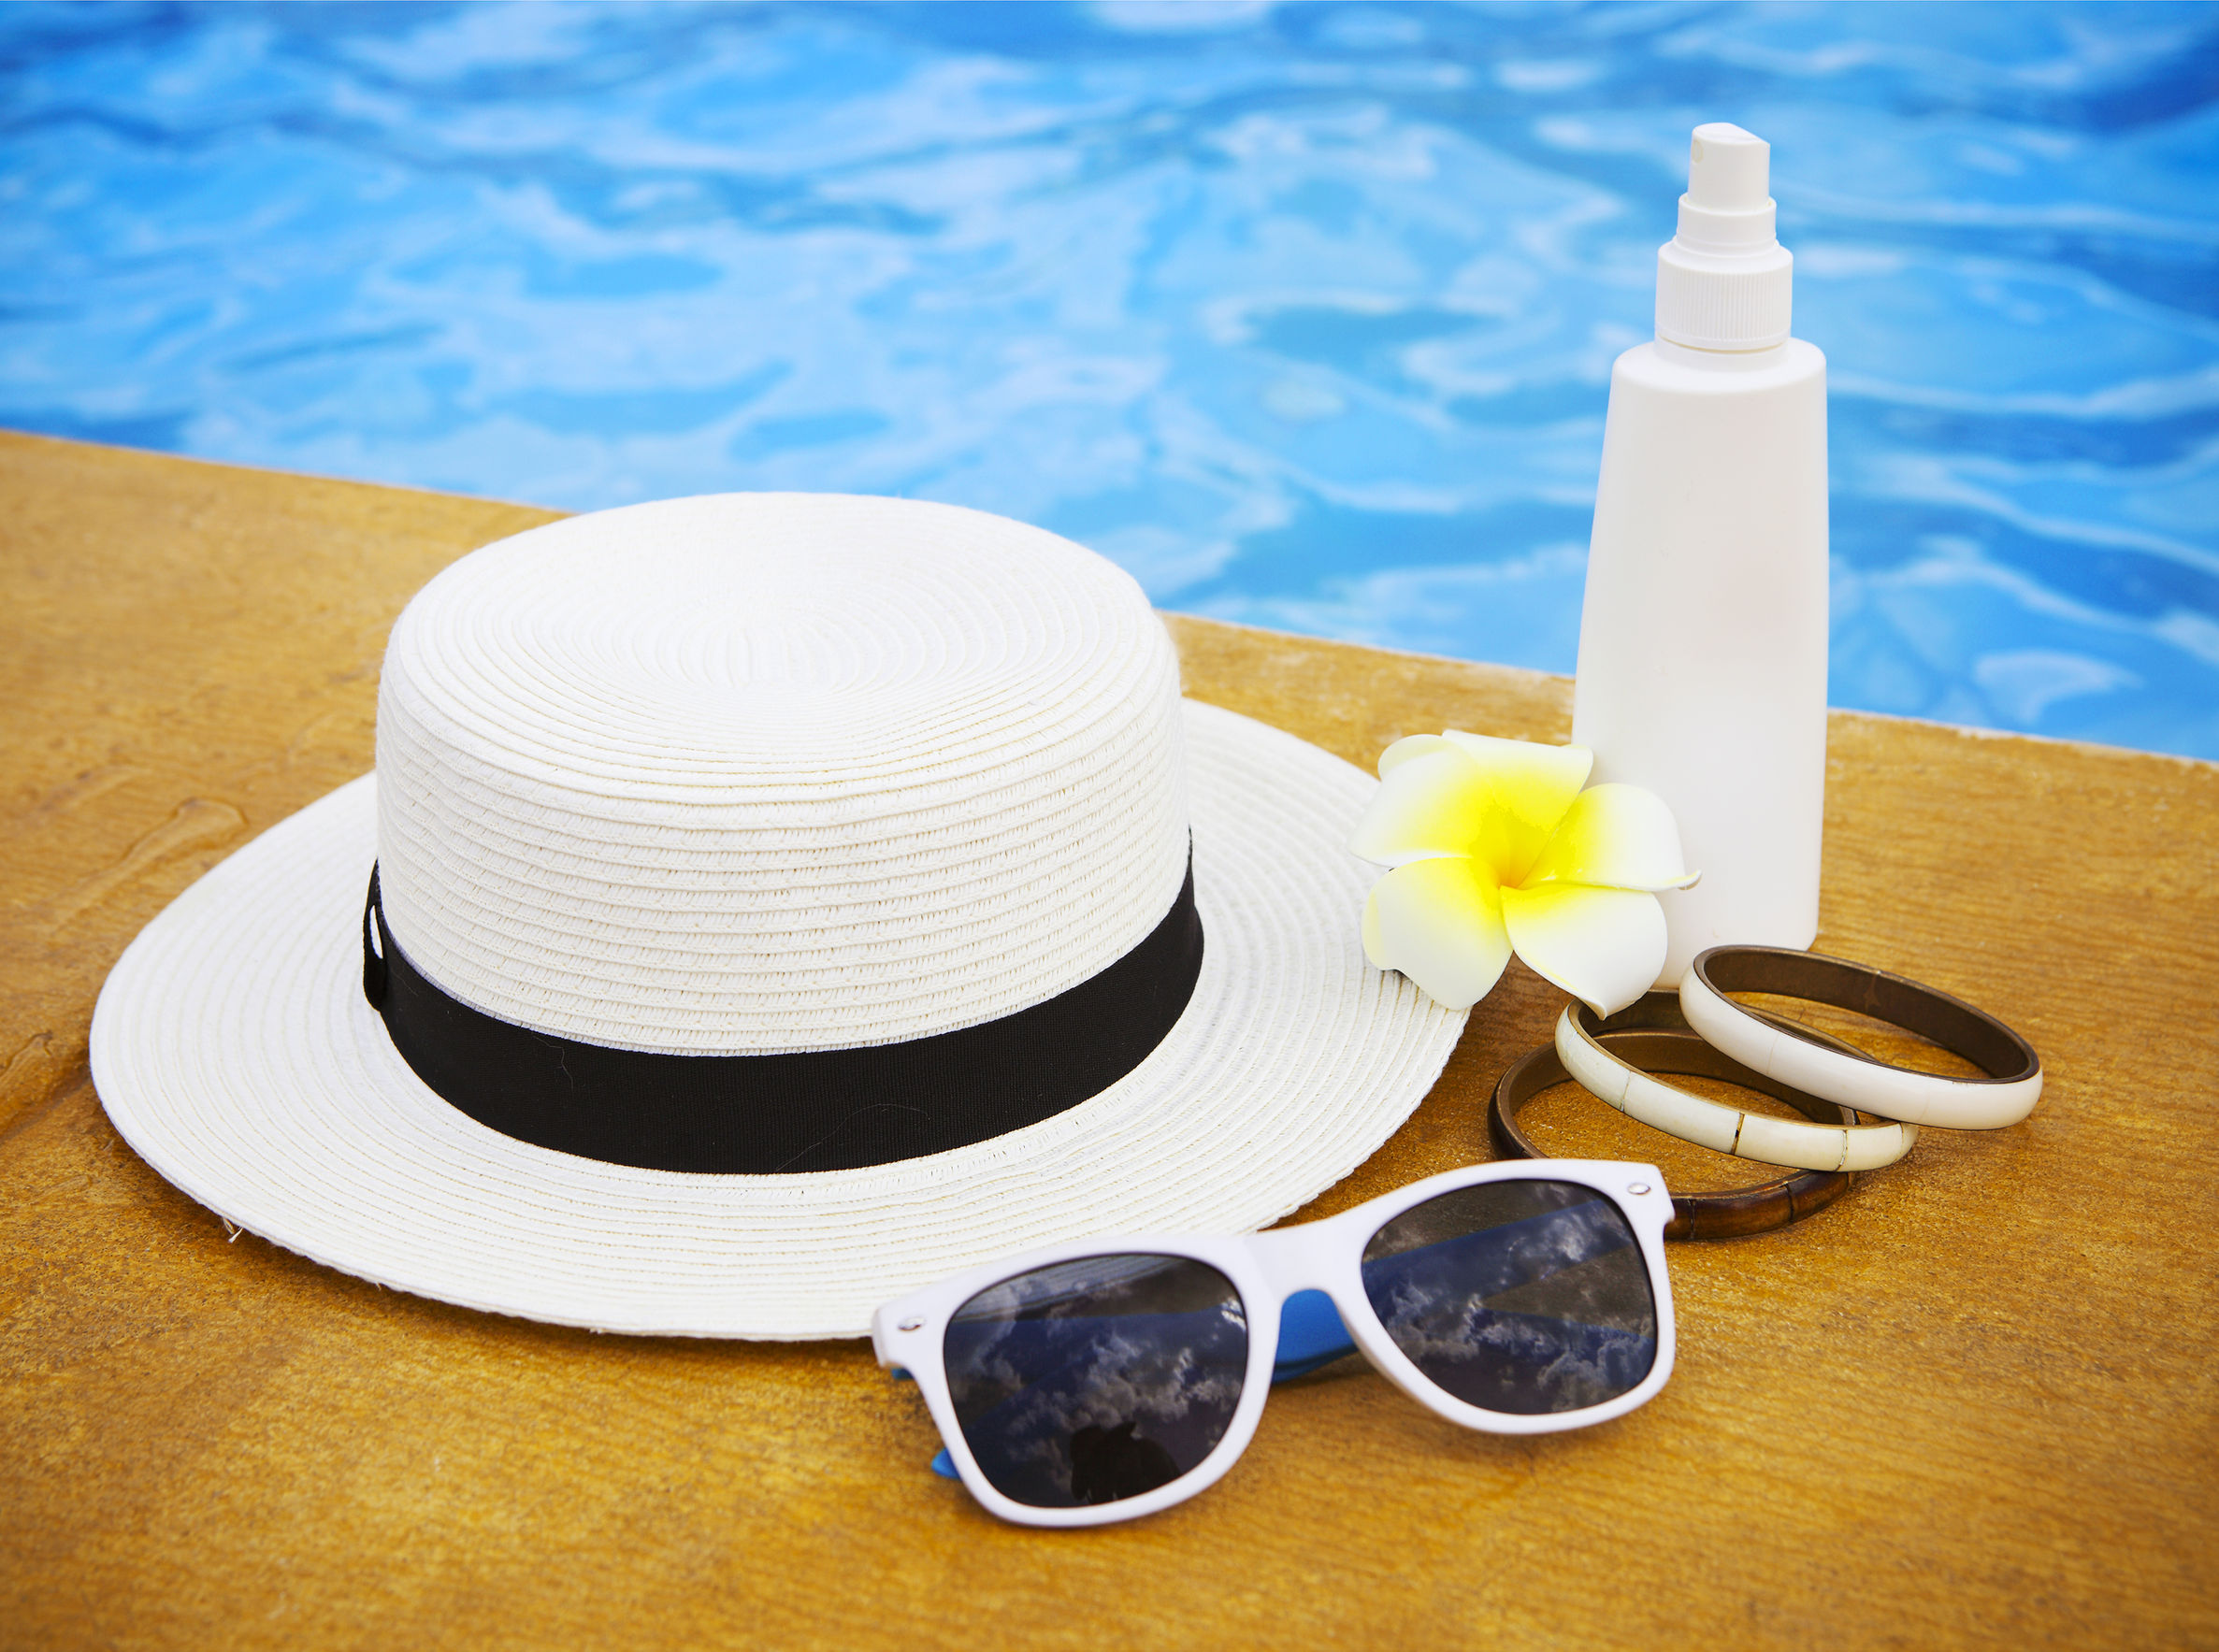 57290419 - suncream, sunglasses, hat, bracelet near the swimming pool. vacation concept